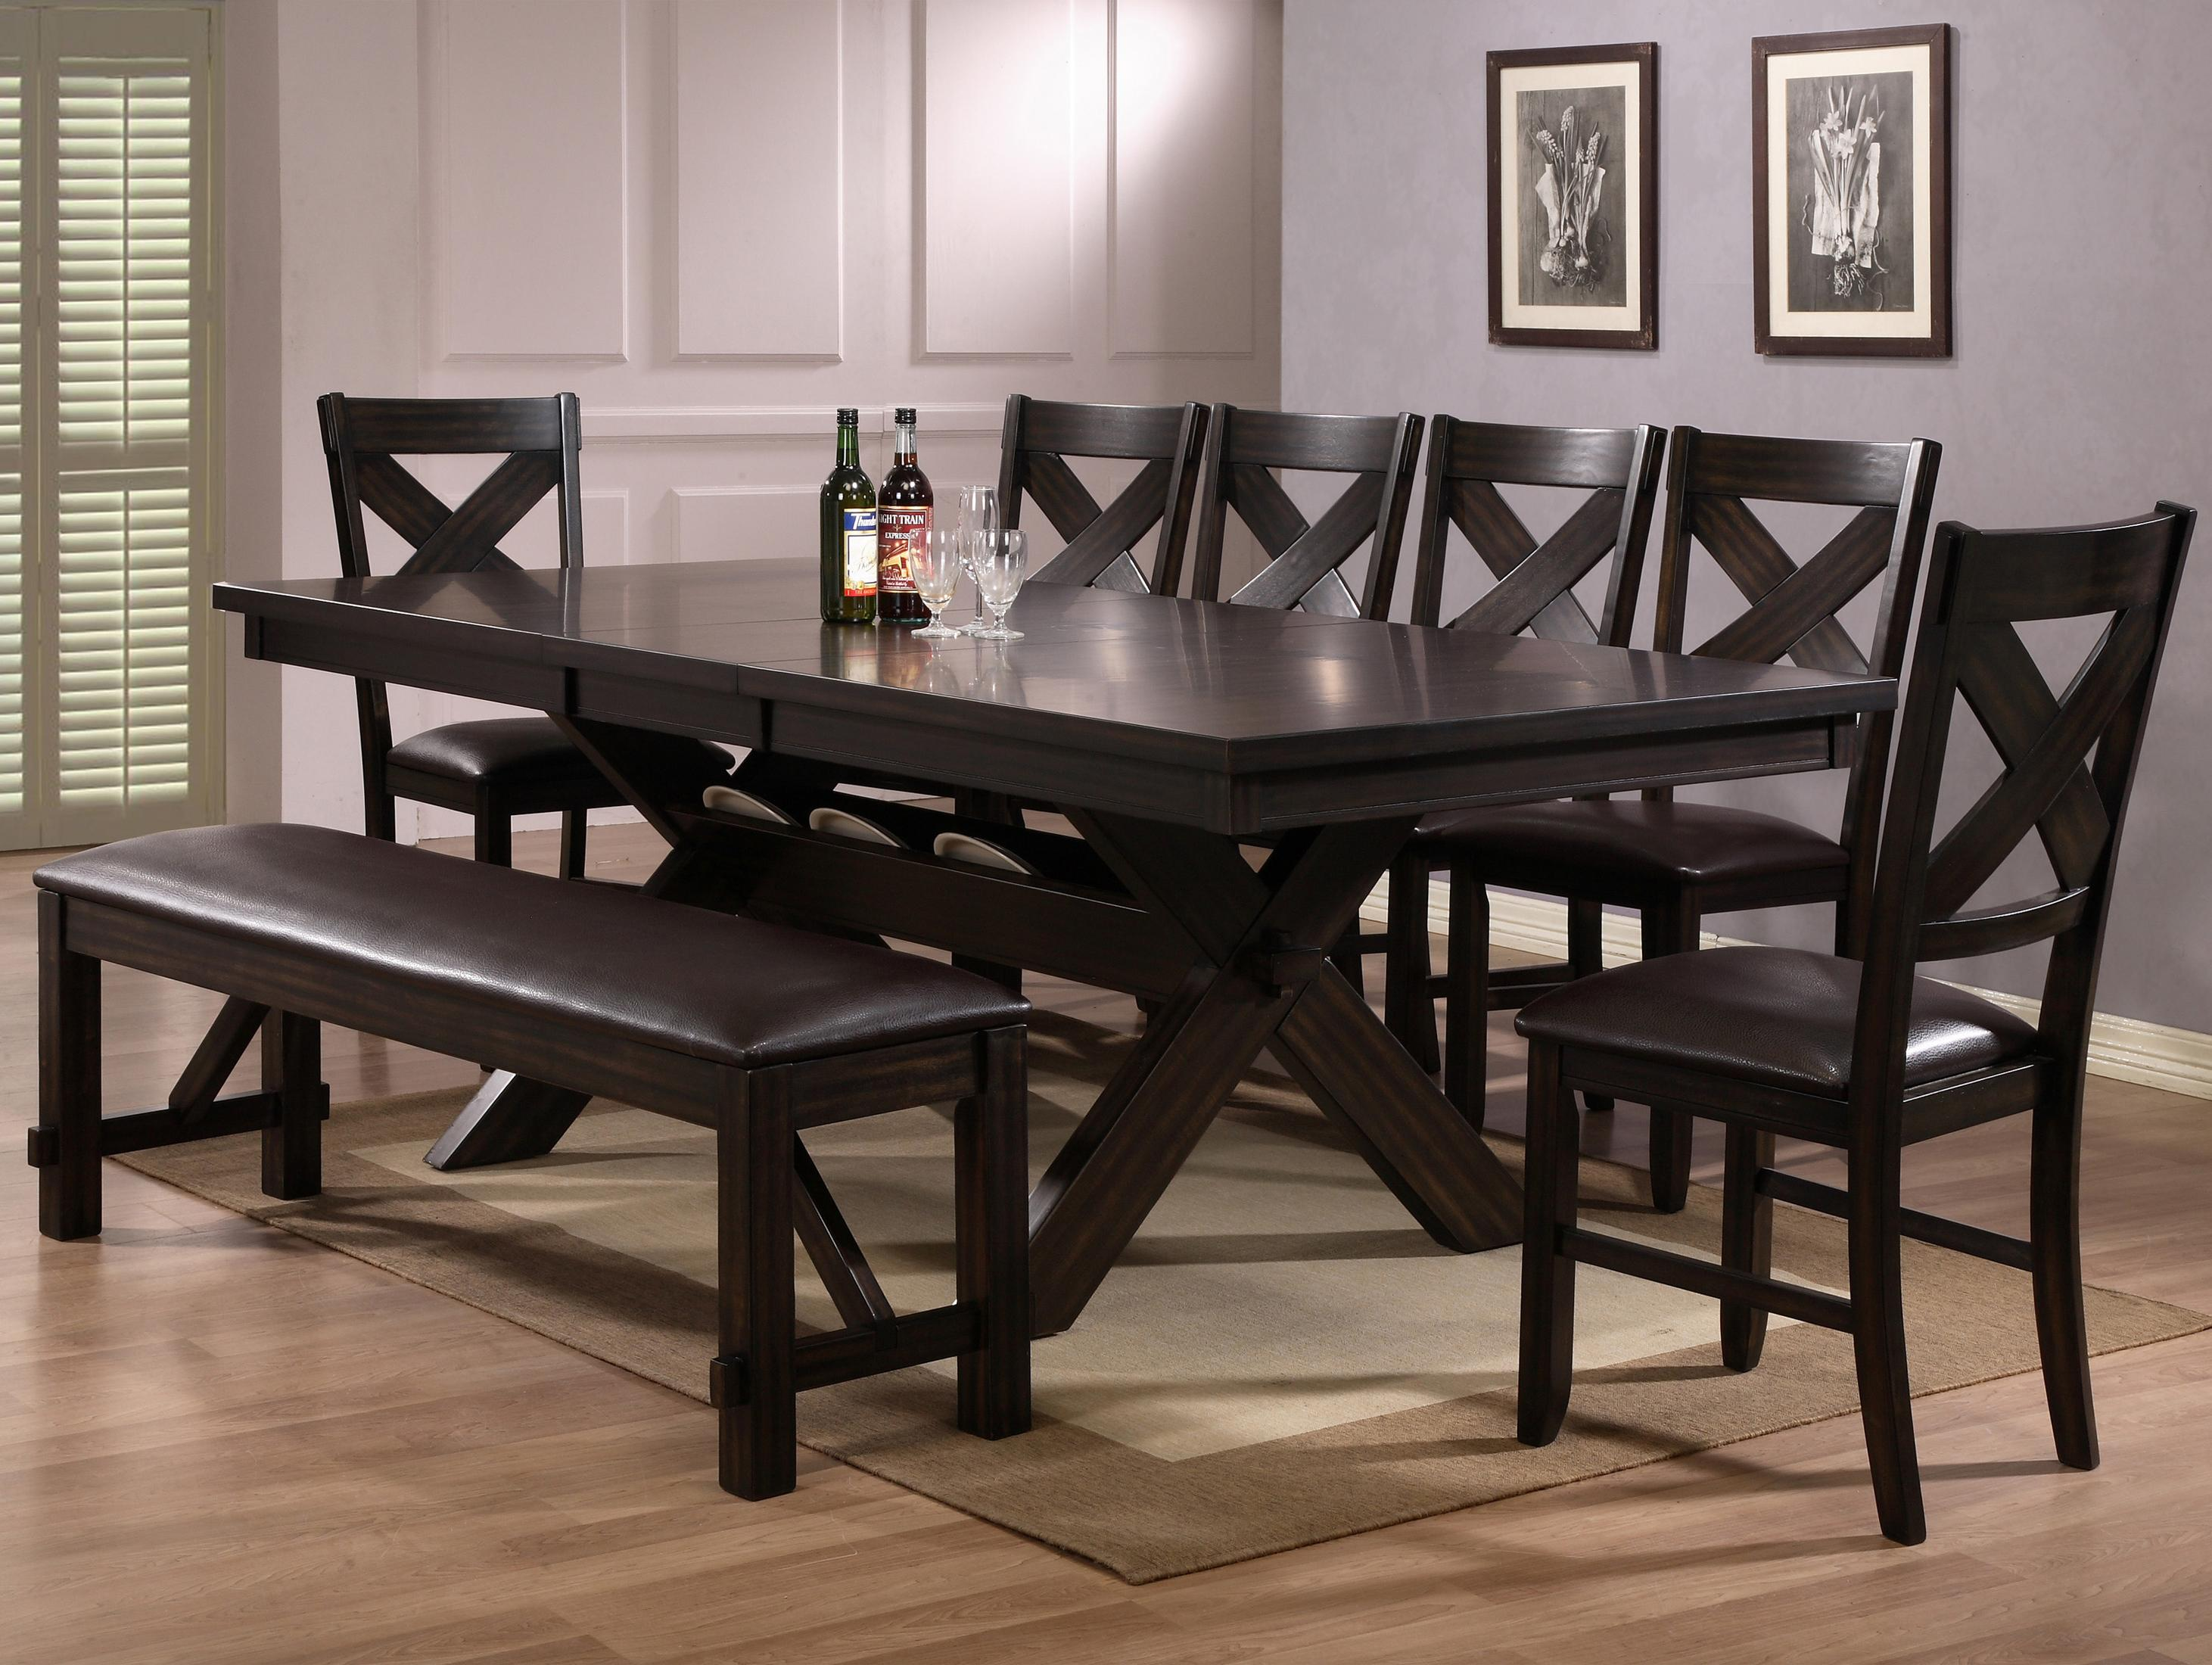 Crown Mark Havana 8 Piece Table & Chair Set - Item Number: 2335T-4290-LEG+TOP+6xS+BENCH